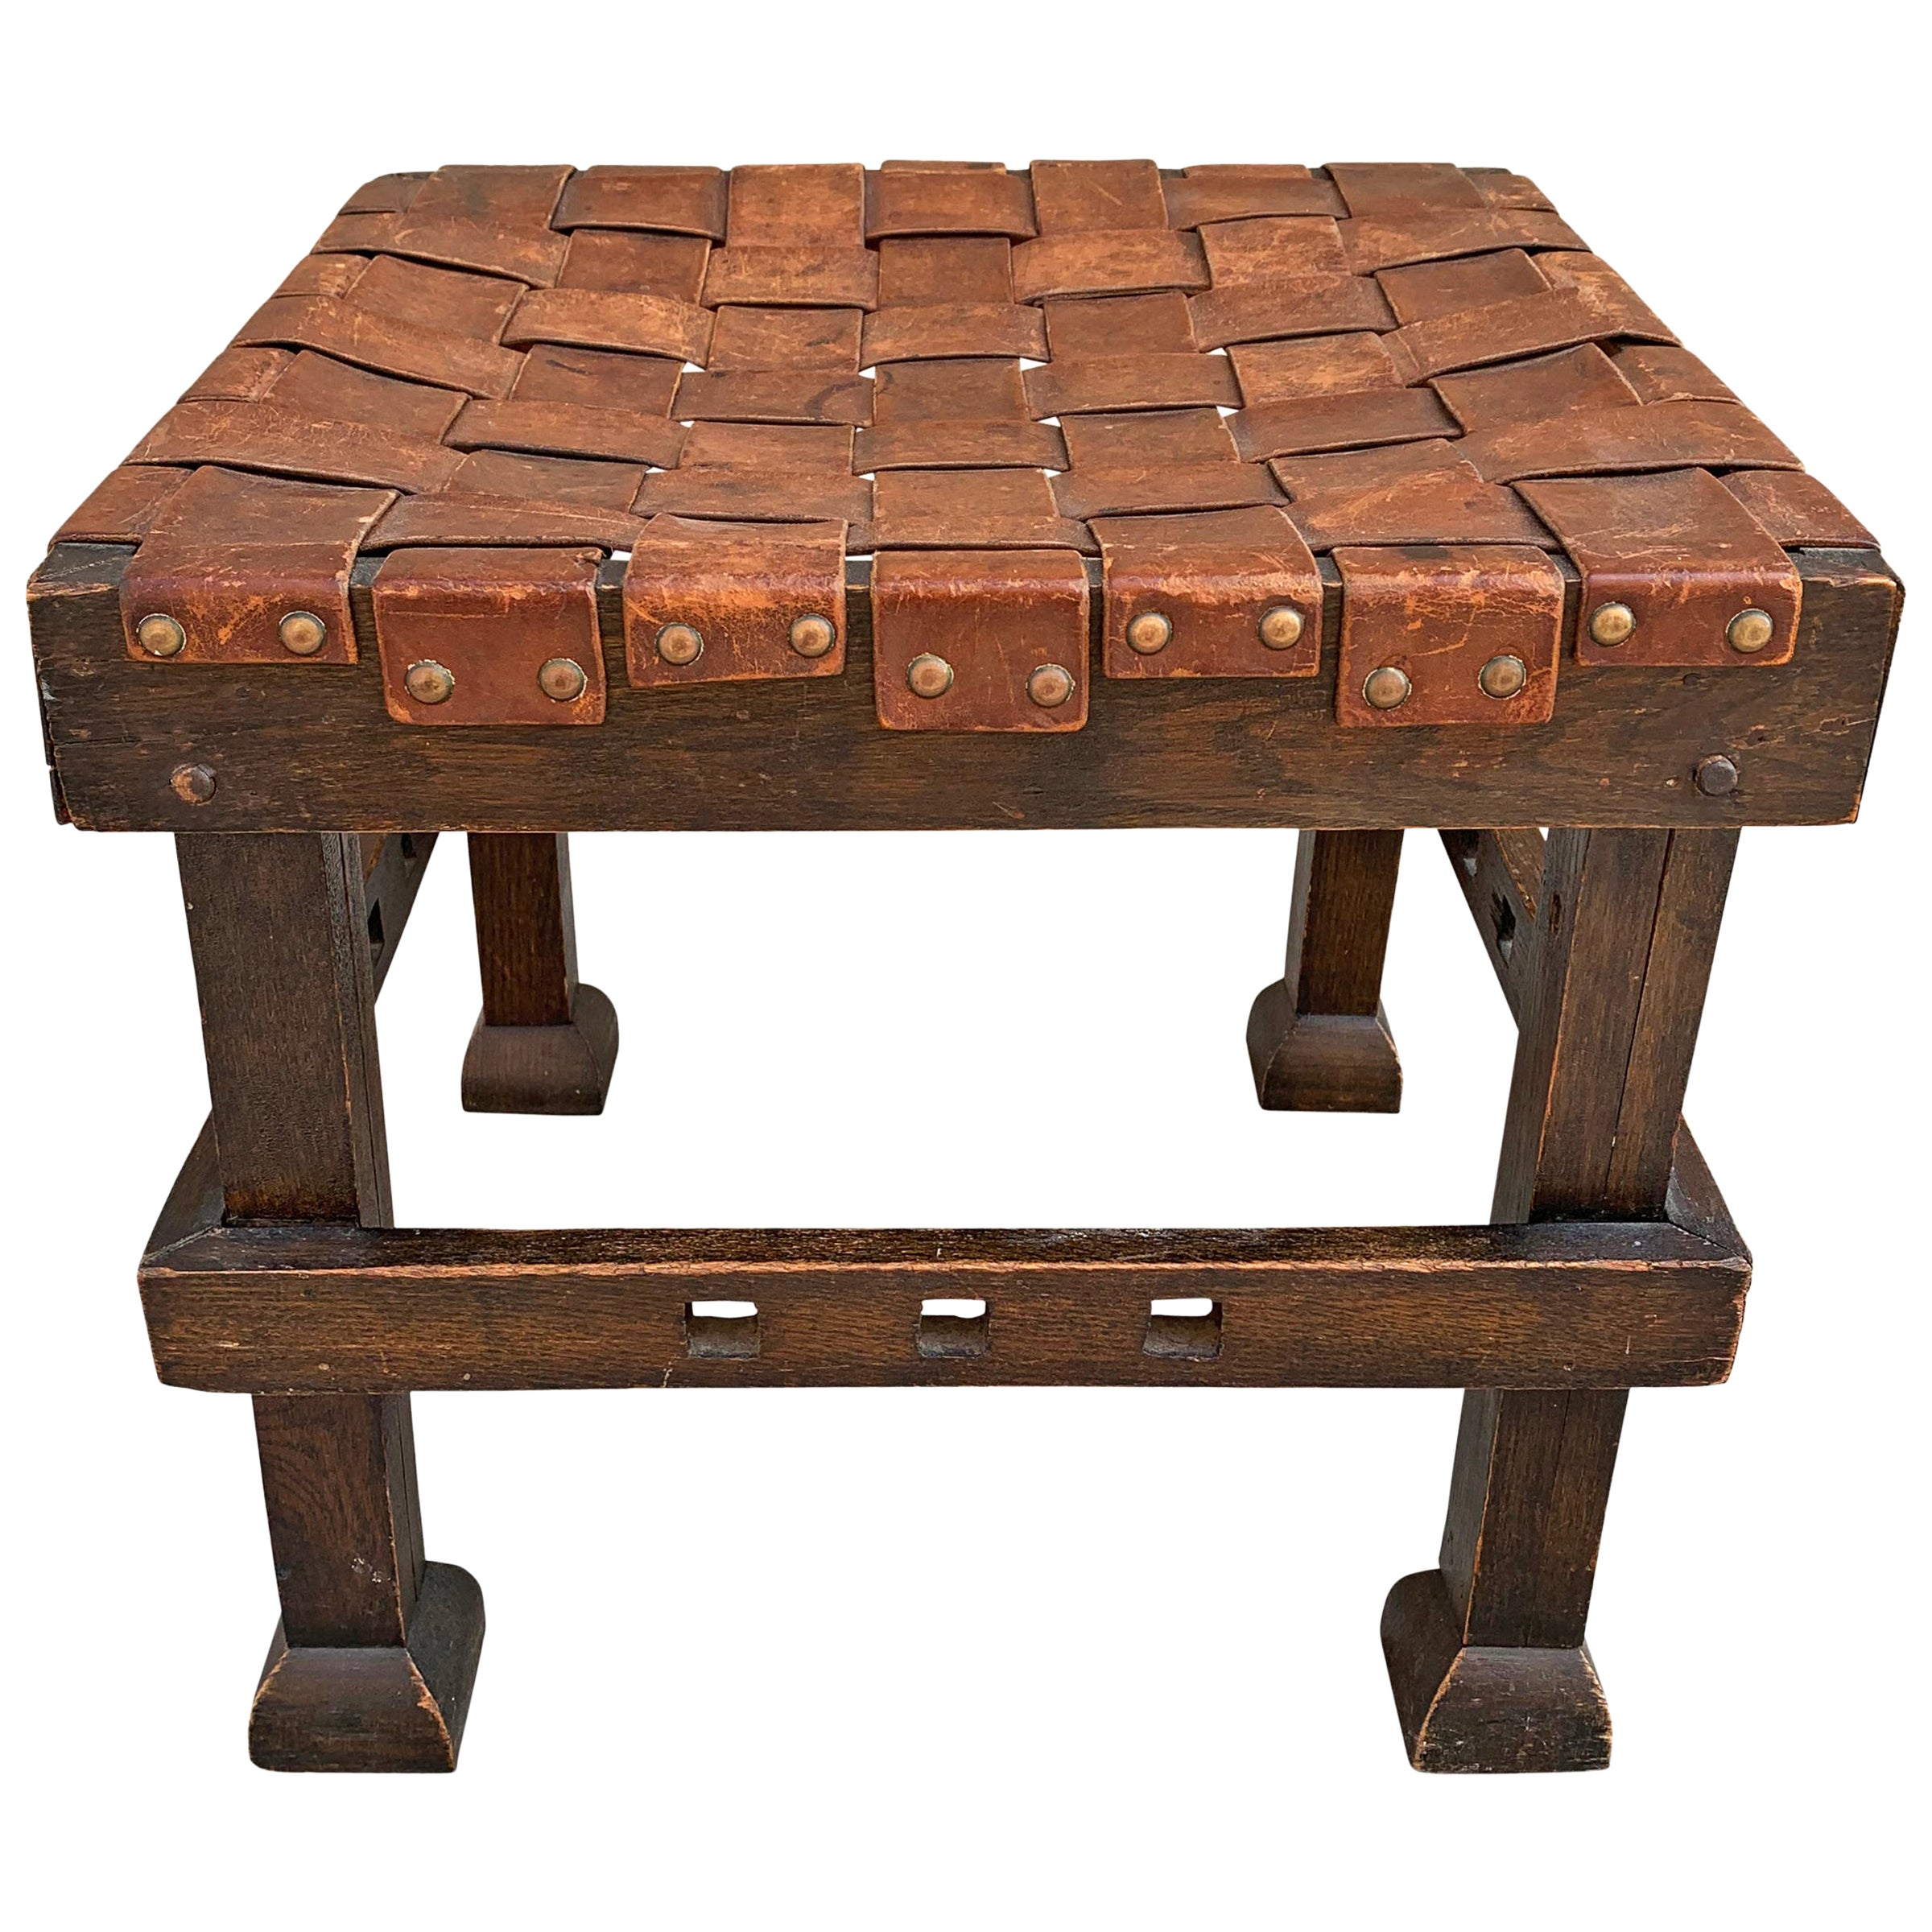 Wonderful Early 20th Century English Arts & Crafts Leather Top Stool